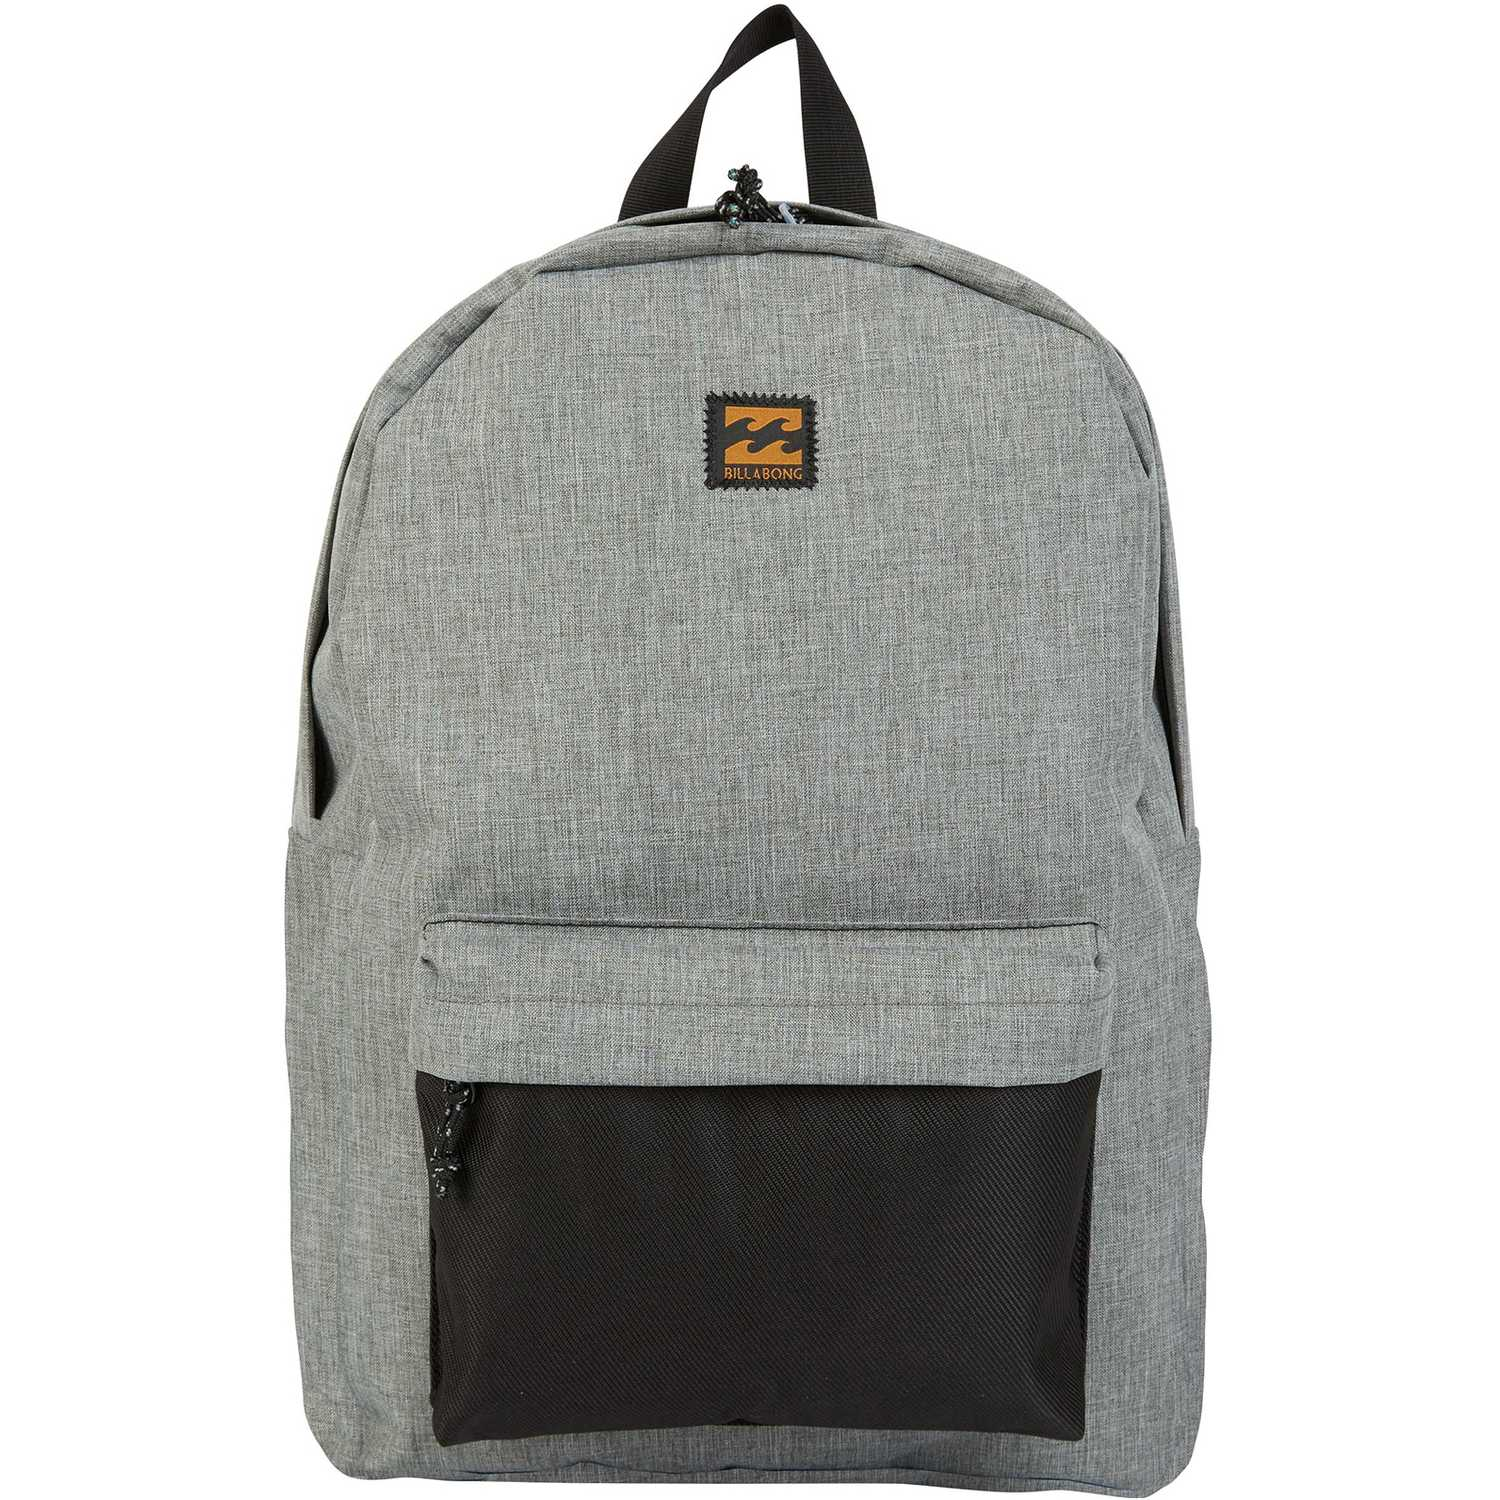 Billabong All Day Pack Gris / negro Mochilas multipropósitos